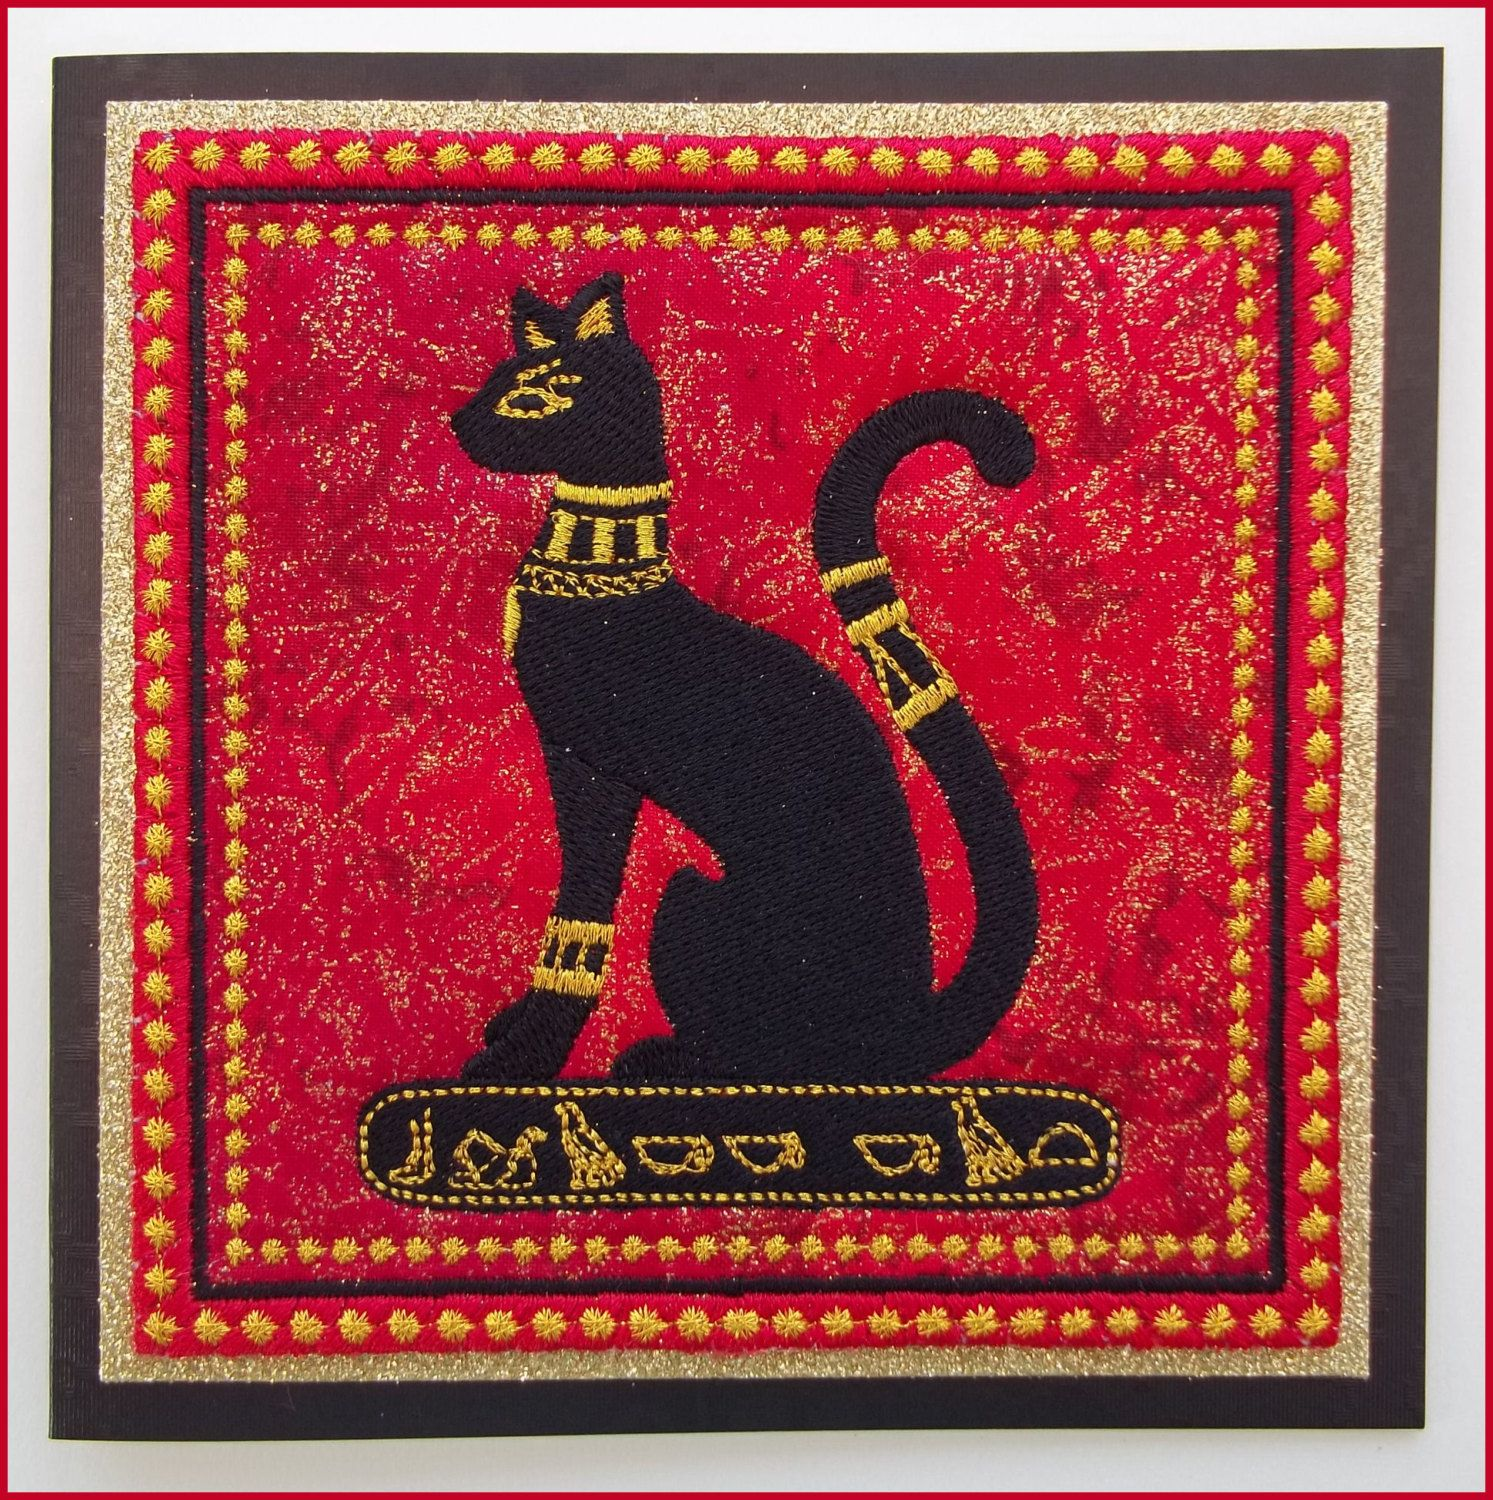 Egyptian Mau cat ,machine embroidered, fabric art card, handmade card, black cat, red and gold padded fabric, measures 6in x 6in. by CushionRock on Etsy